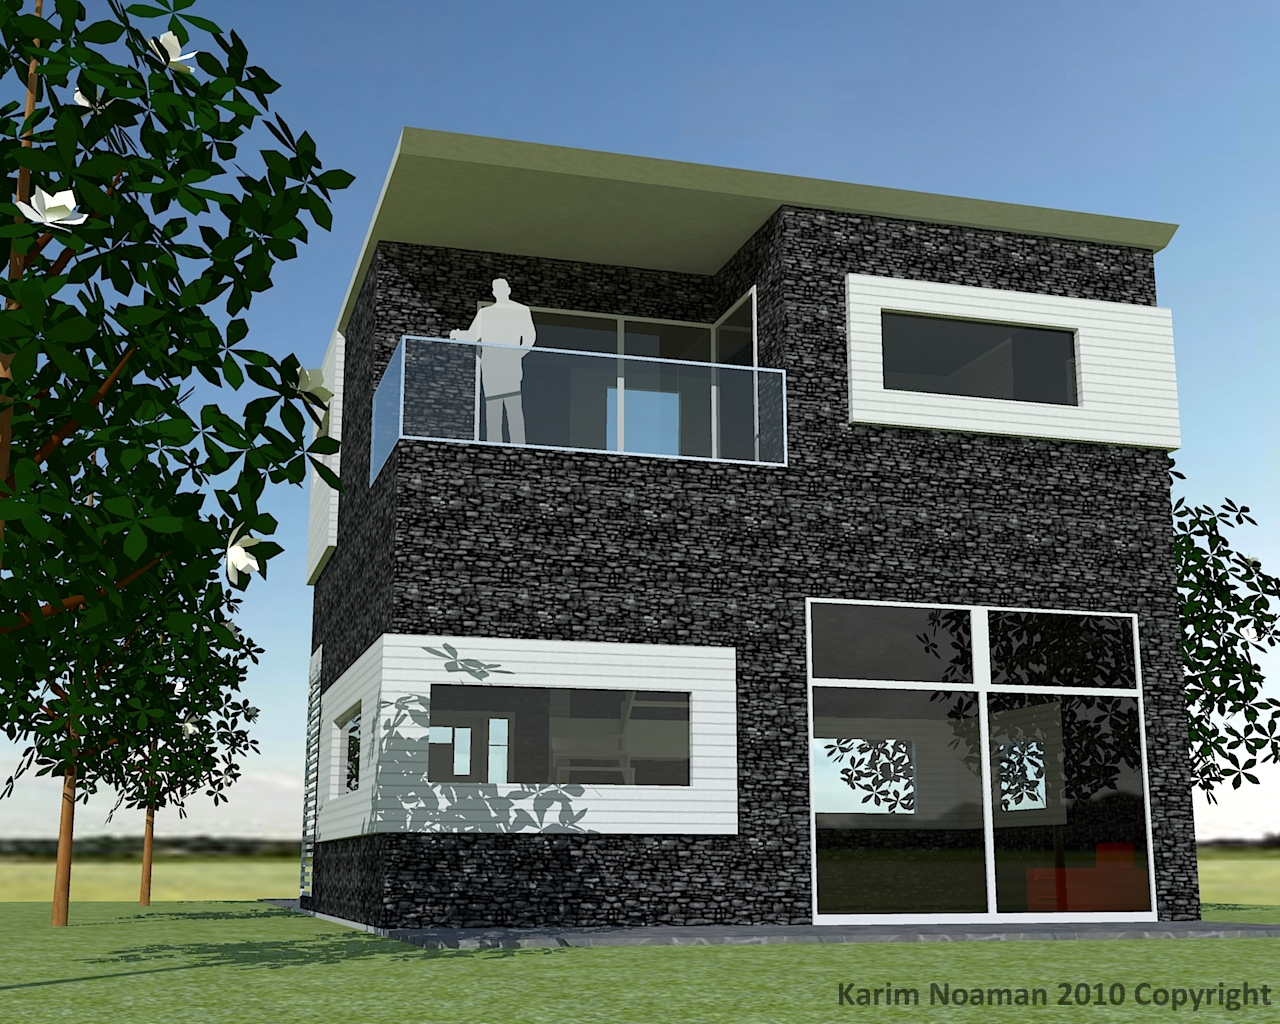 Simple Modern House Design By Knoaman On Deviantart: simple house model design